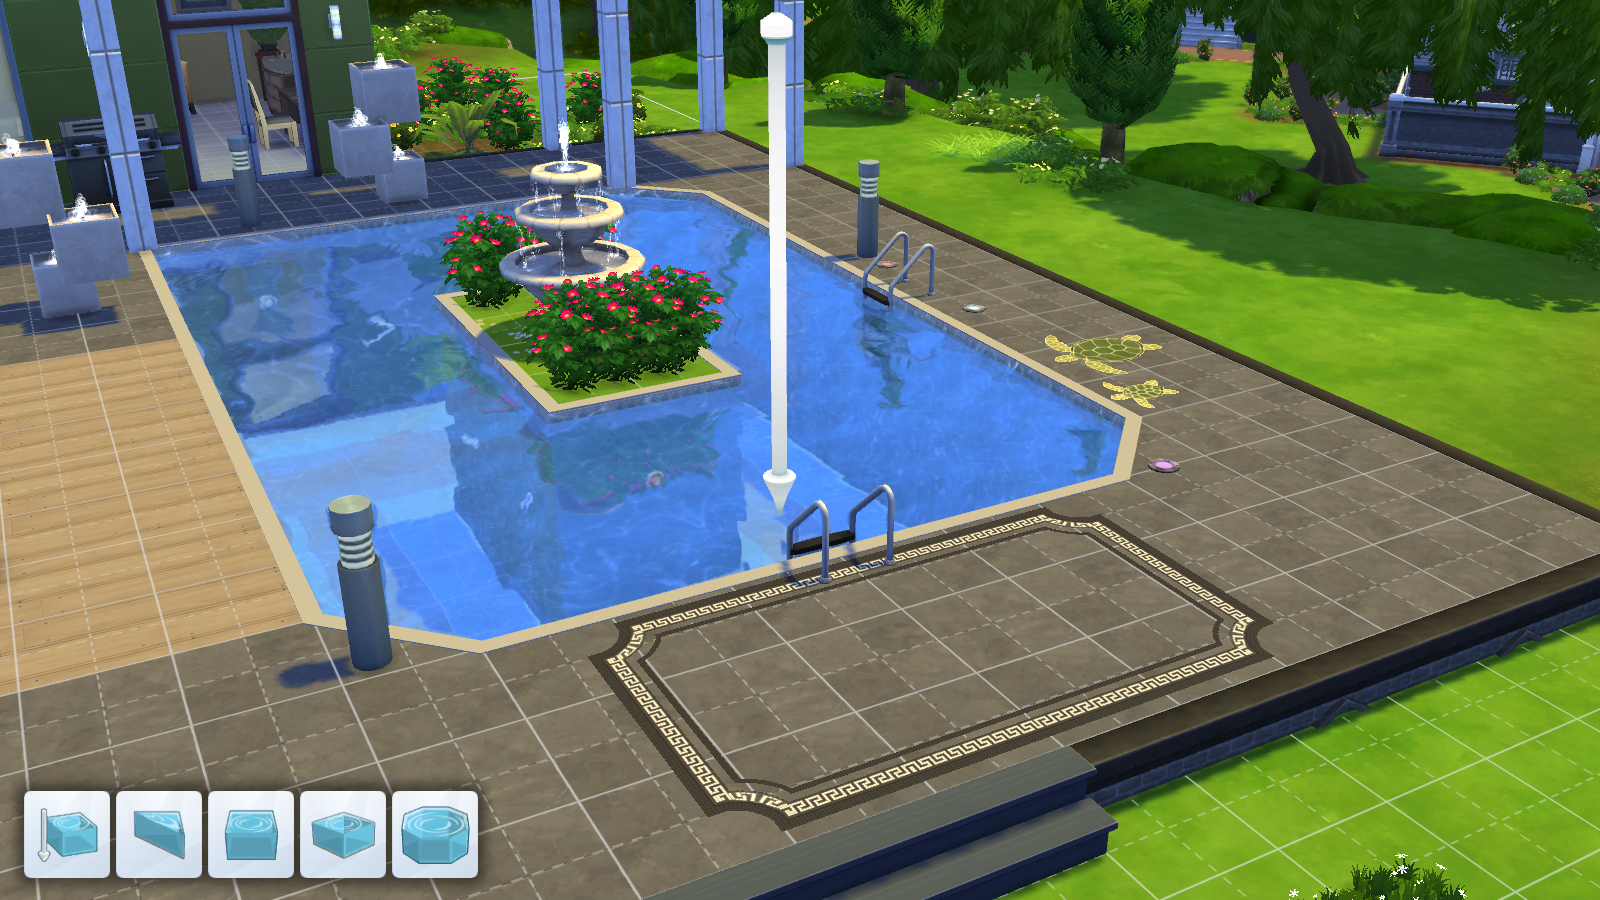 The sims 4 build mode simcitizens for Pool design sims 4